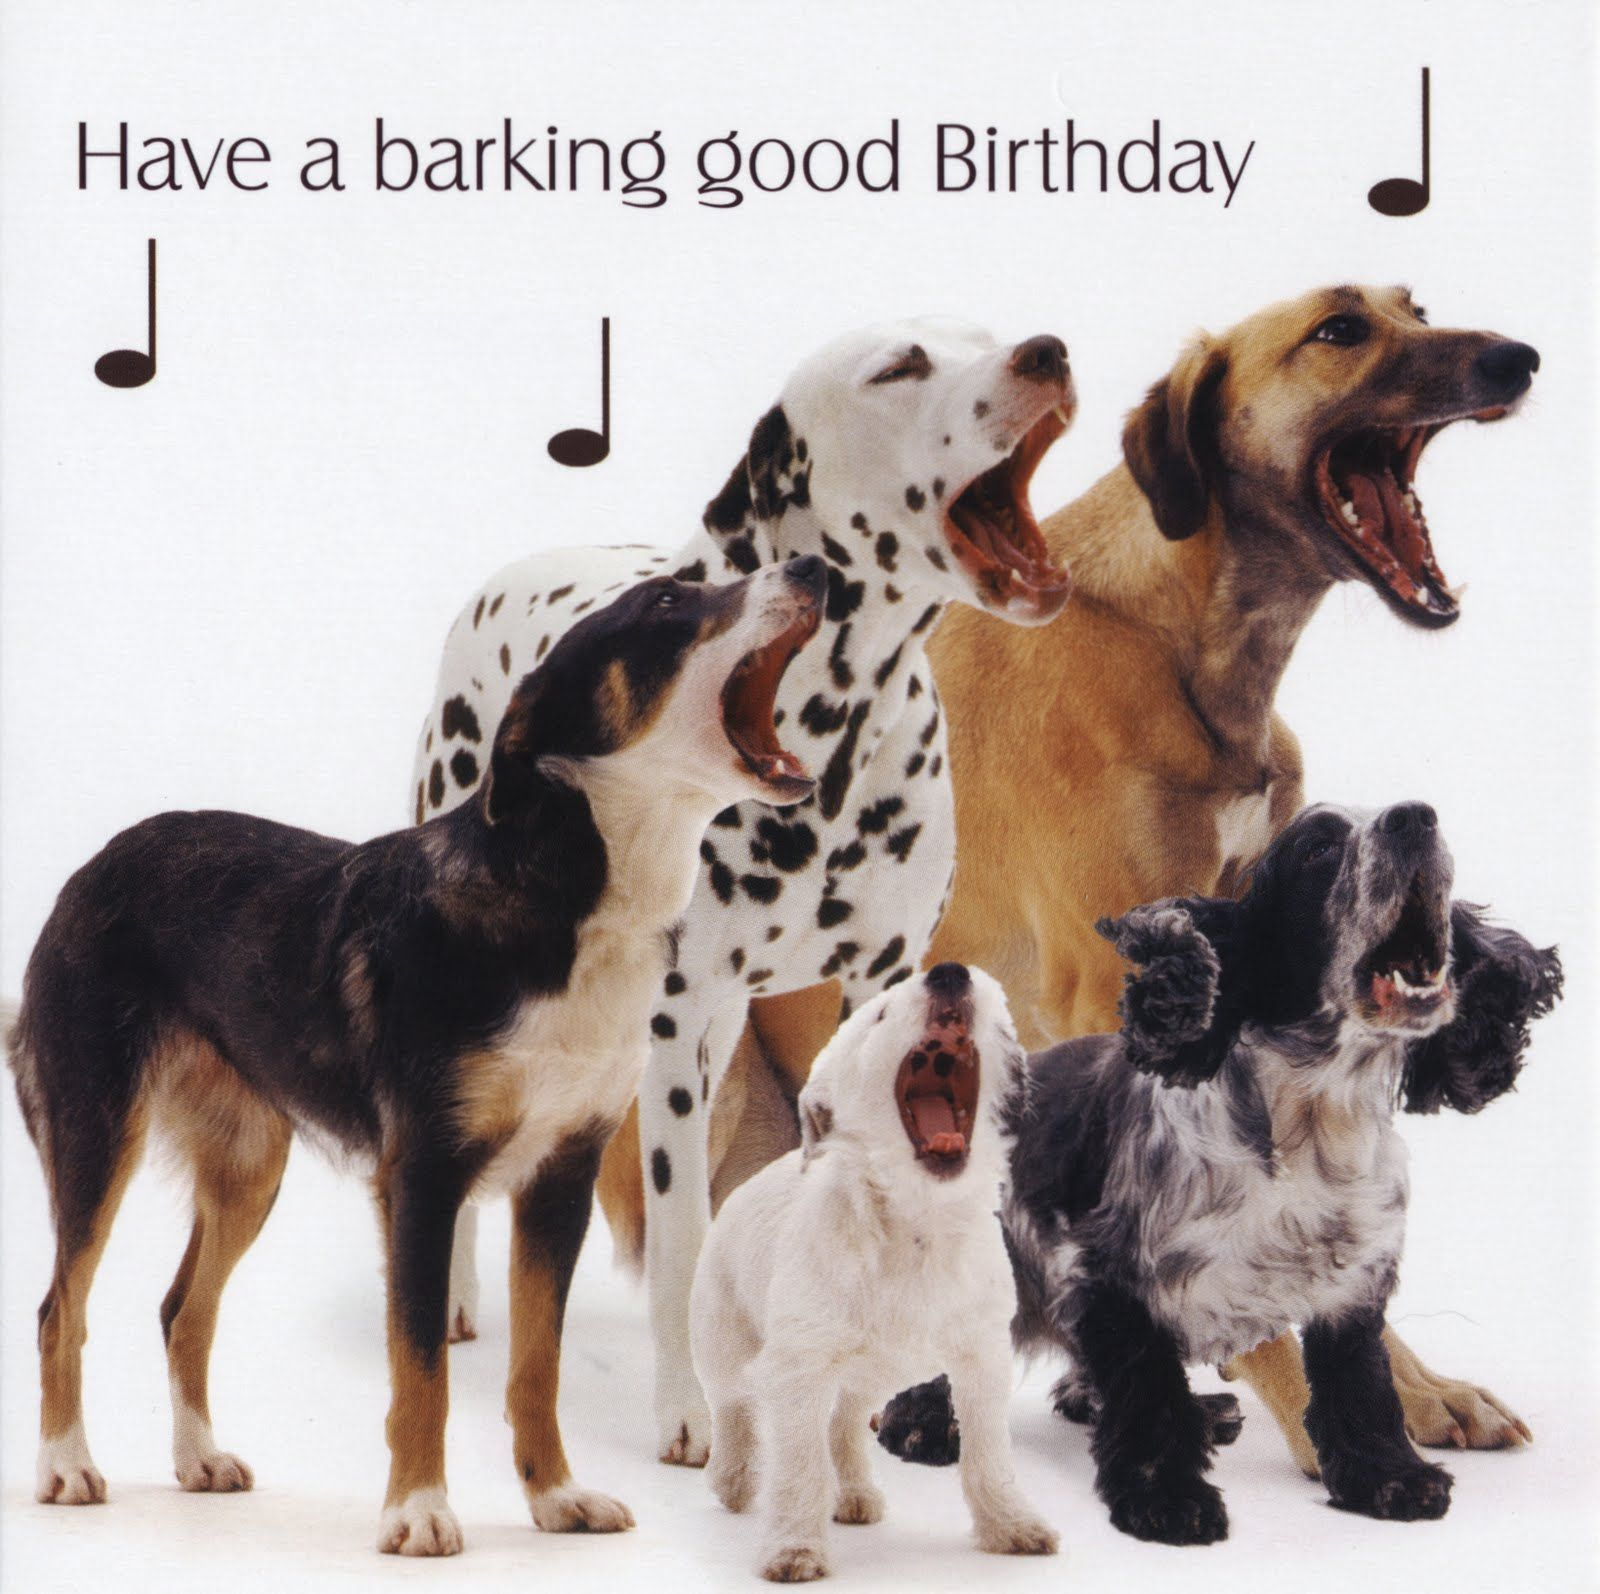 Dog birthday wishes google search doggy birthday wishes dog birthday wishes google search kristyandbryce Choice Image